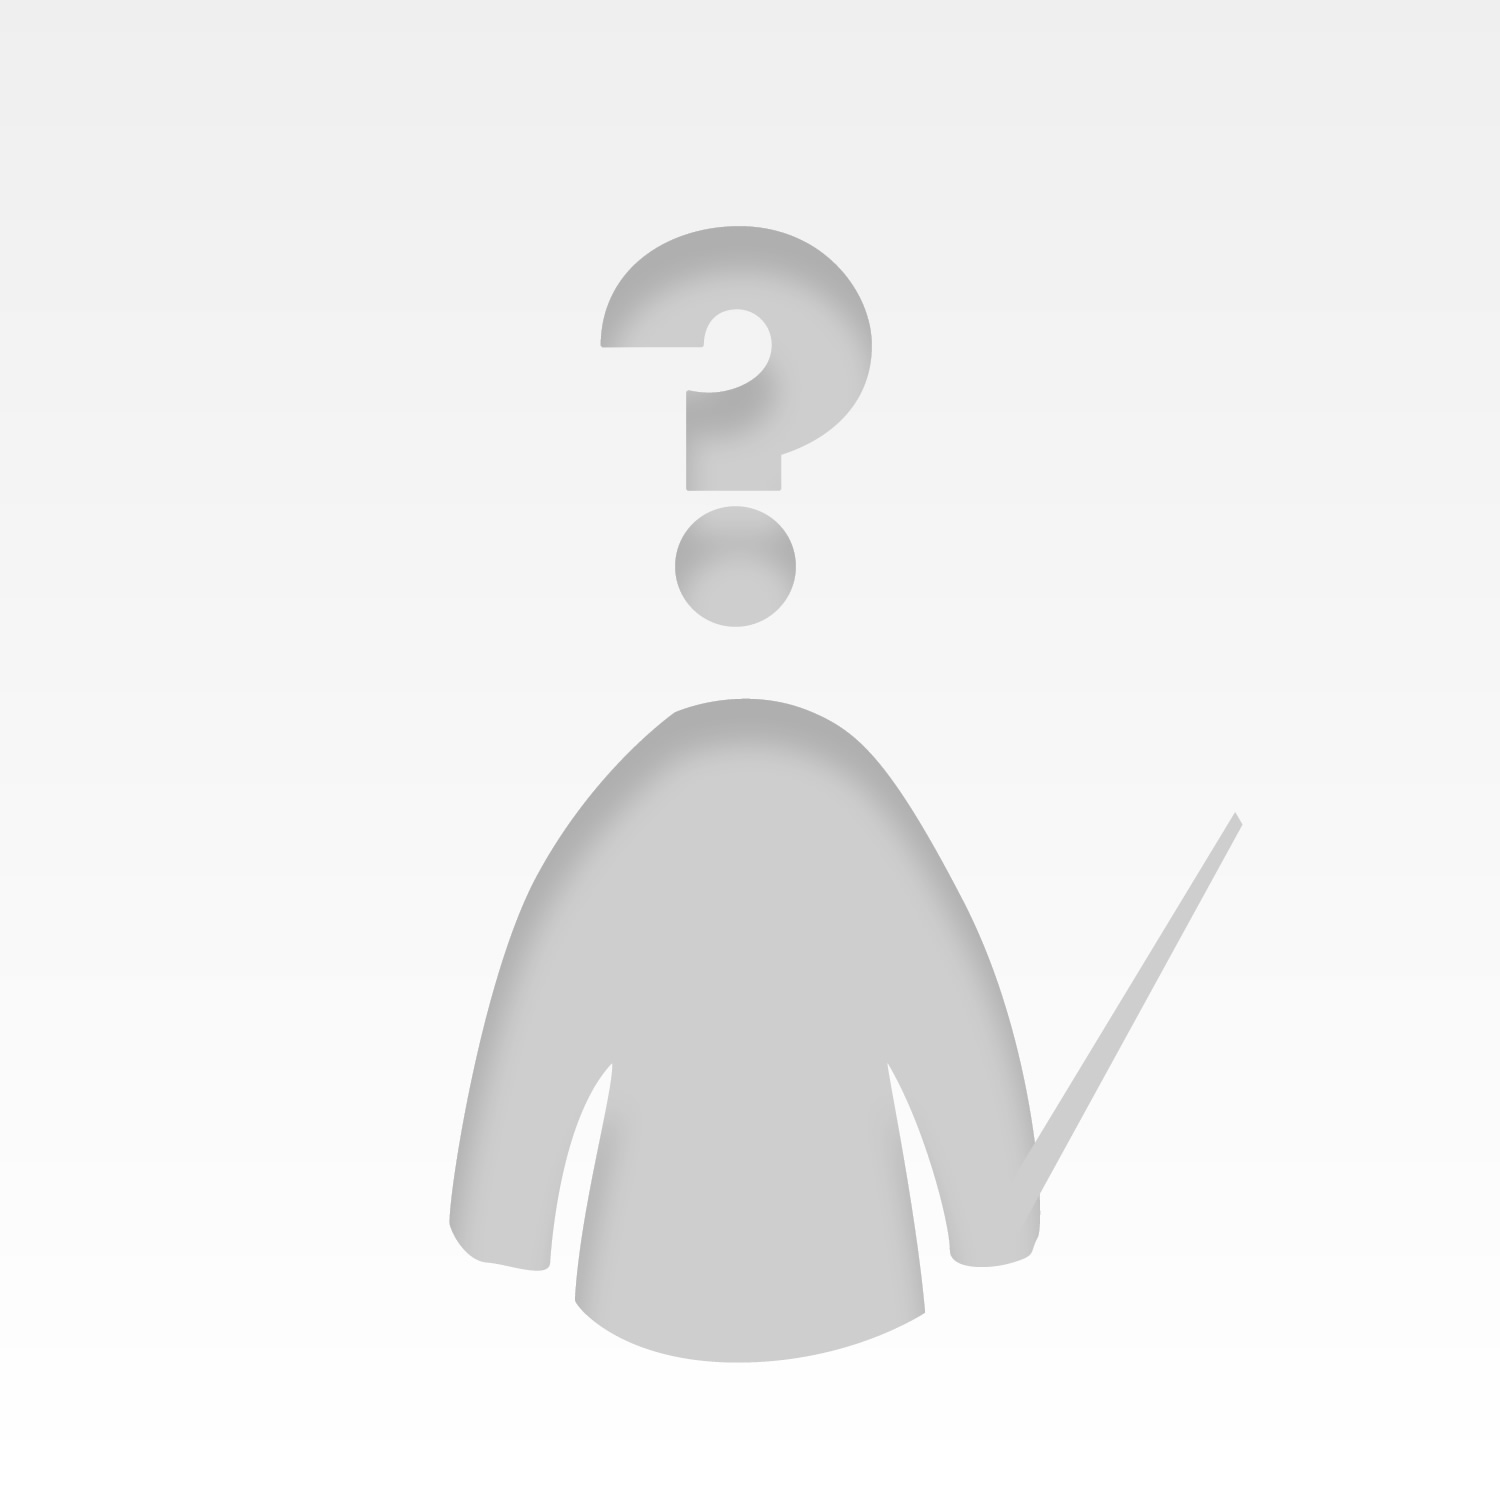 chatlibrary\'s avatar